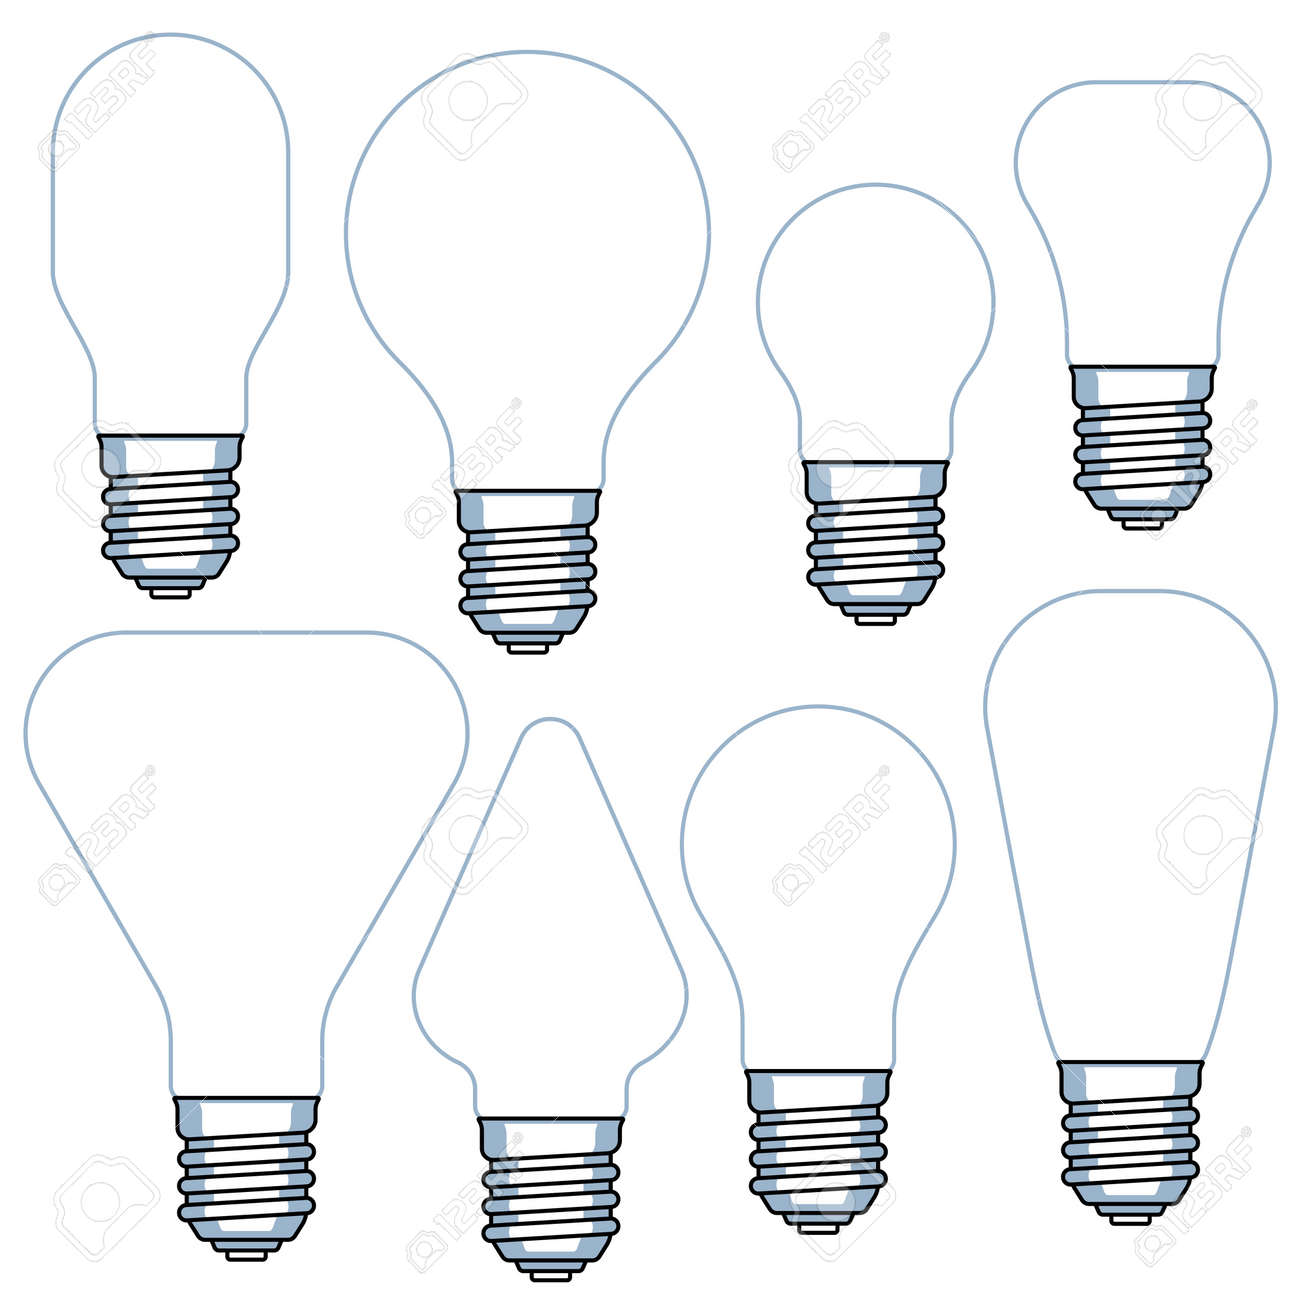 image relating to Light Bulb Template Printable named mild bulb template -